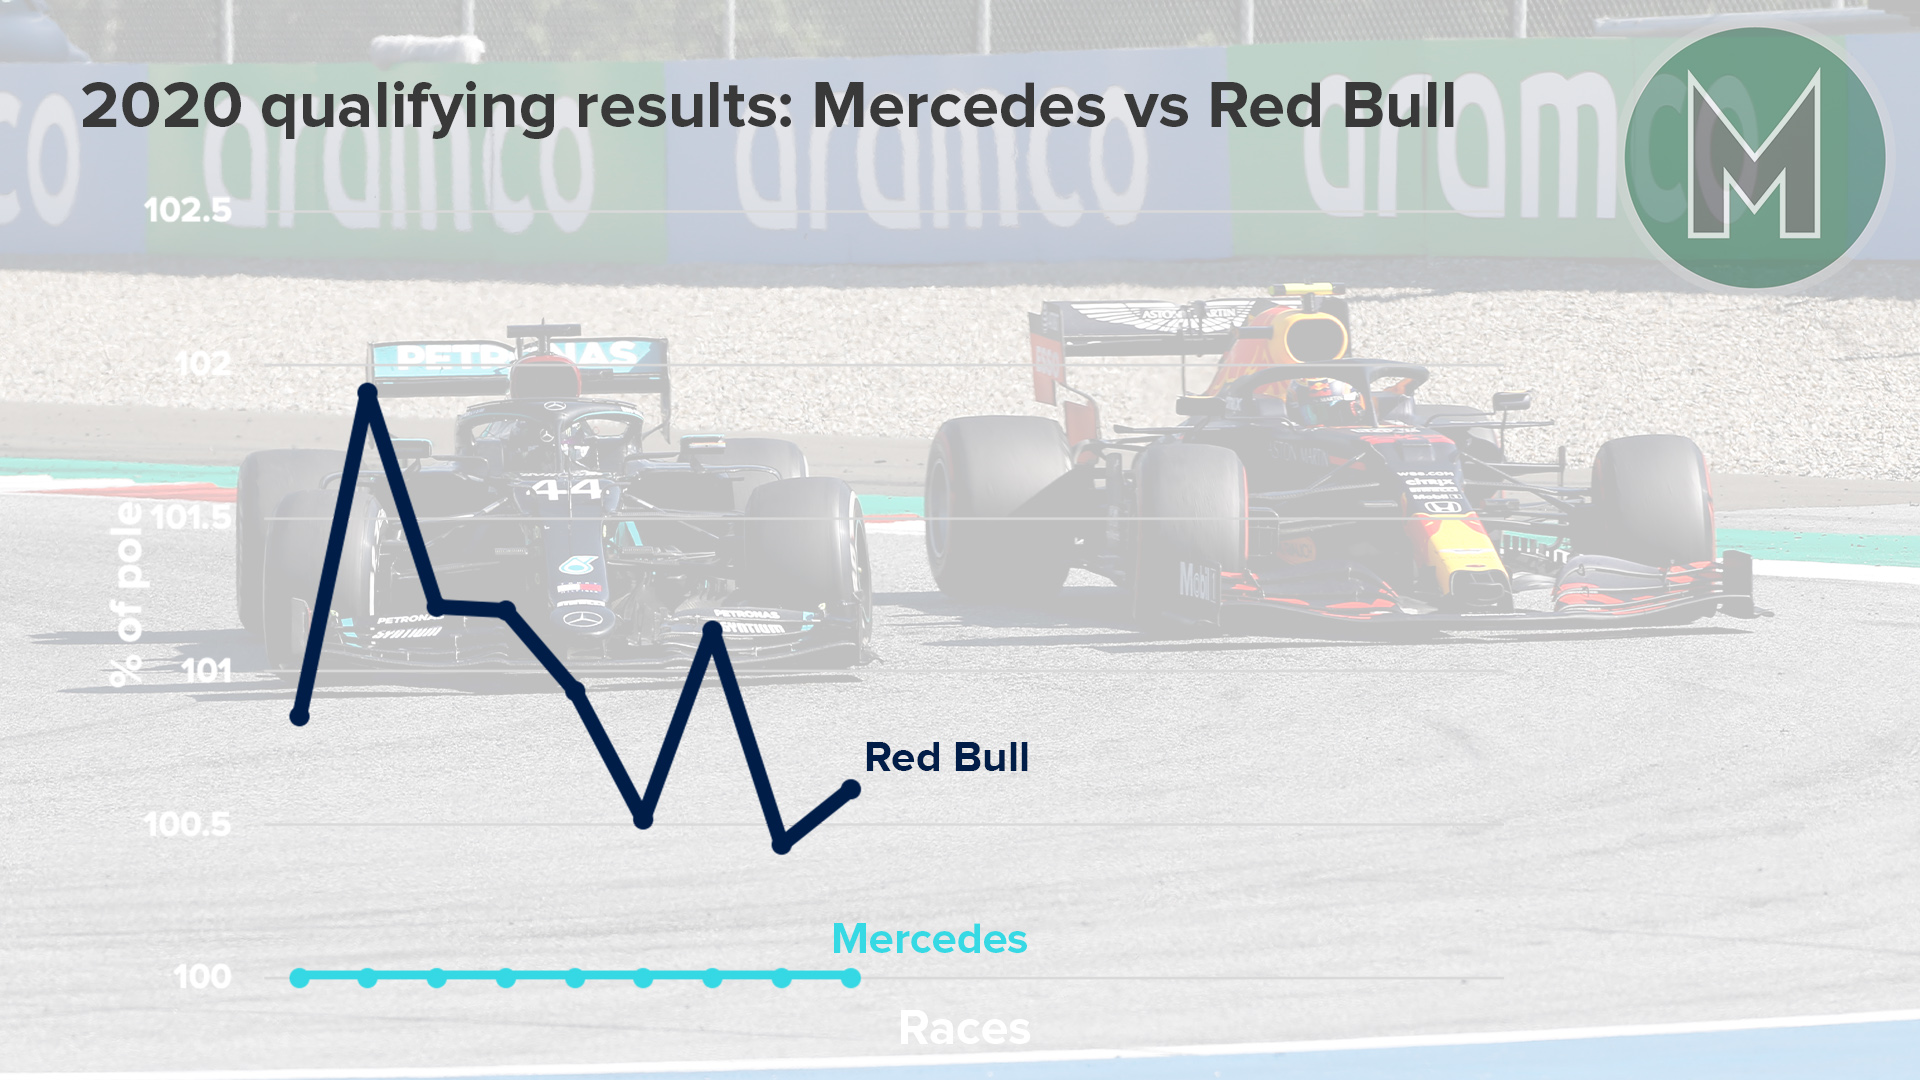 Graph showing Mercedes and Red Bull F1 qualifying performance in 2020